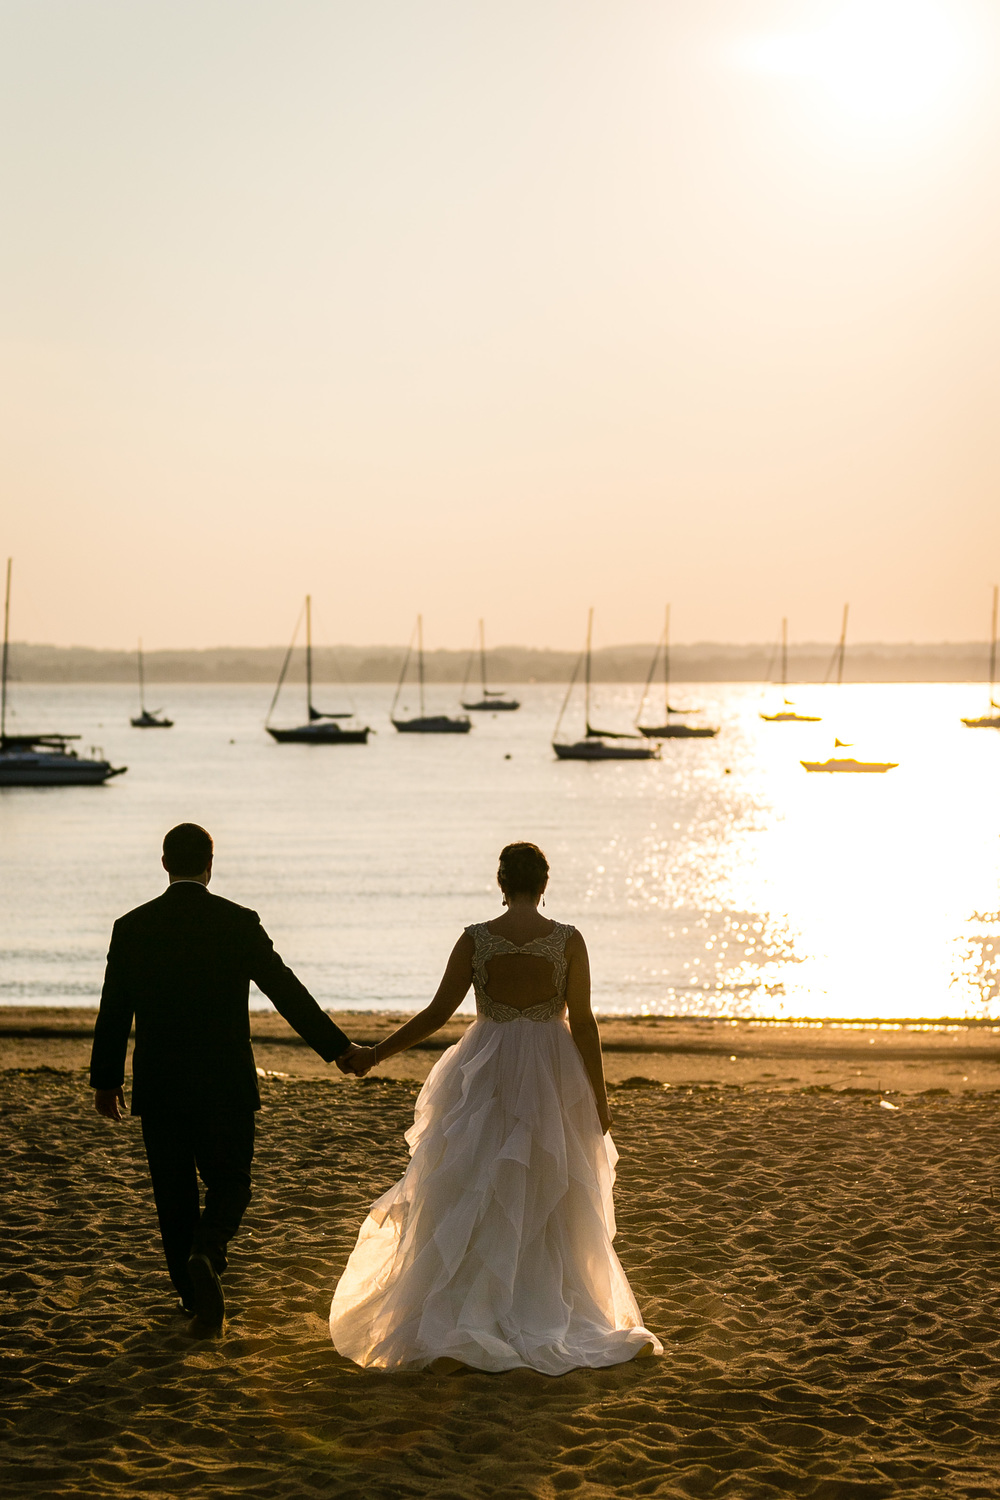 Summer-American-Wedding-Anthonys-Ocean-View-New-Haven-Documentary-Wedding-Photographer-Jacek-Dolata-16.jpg